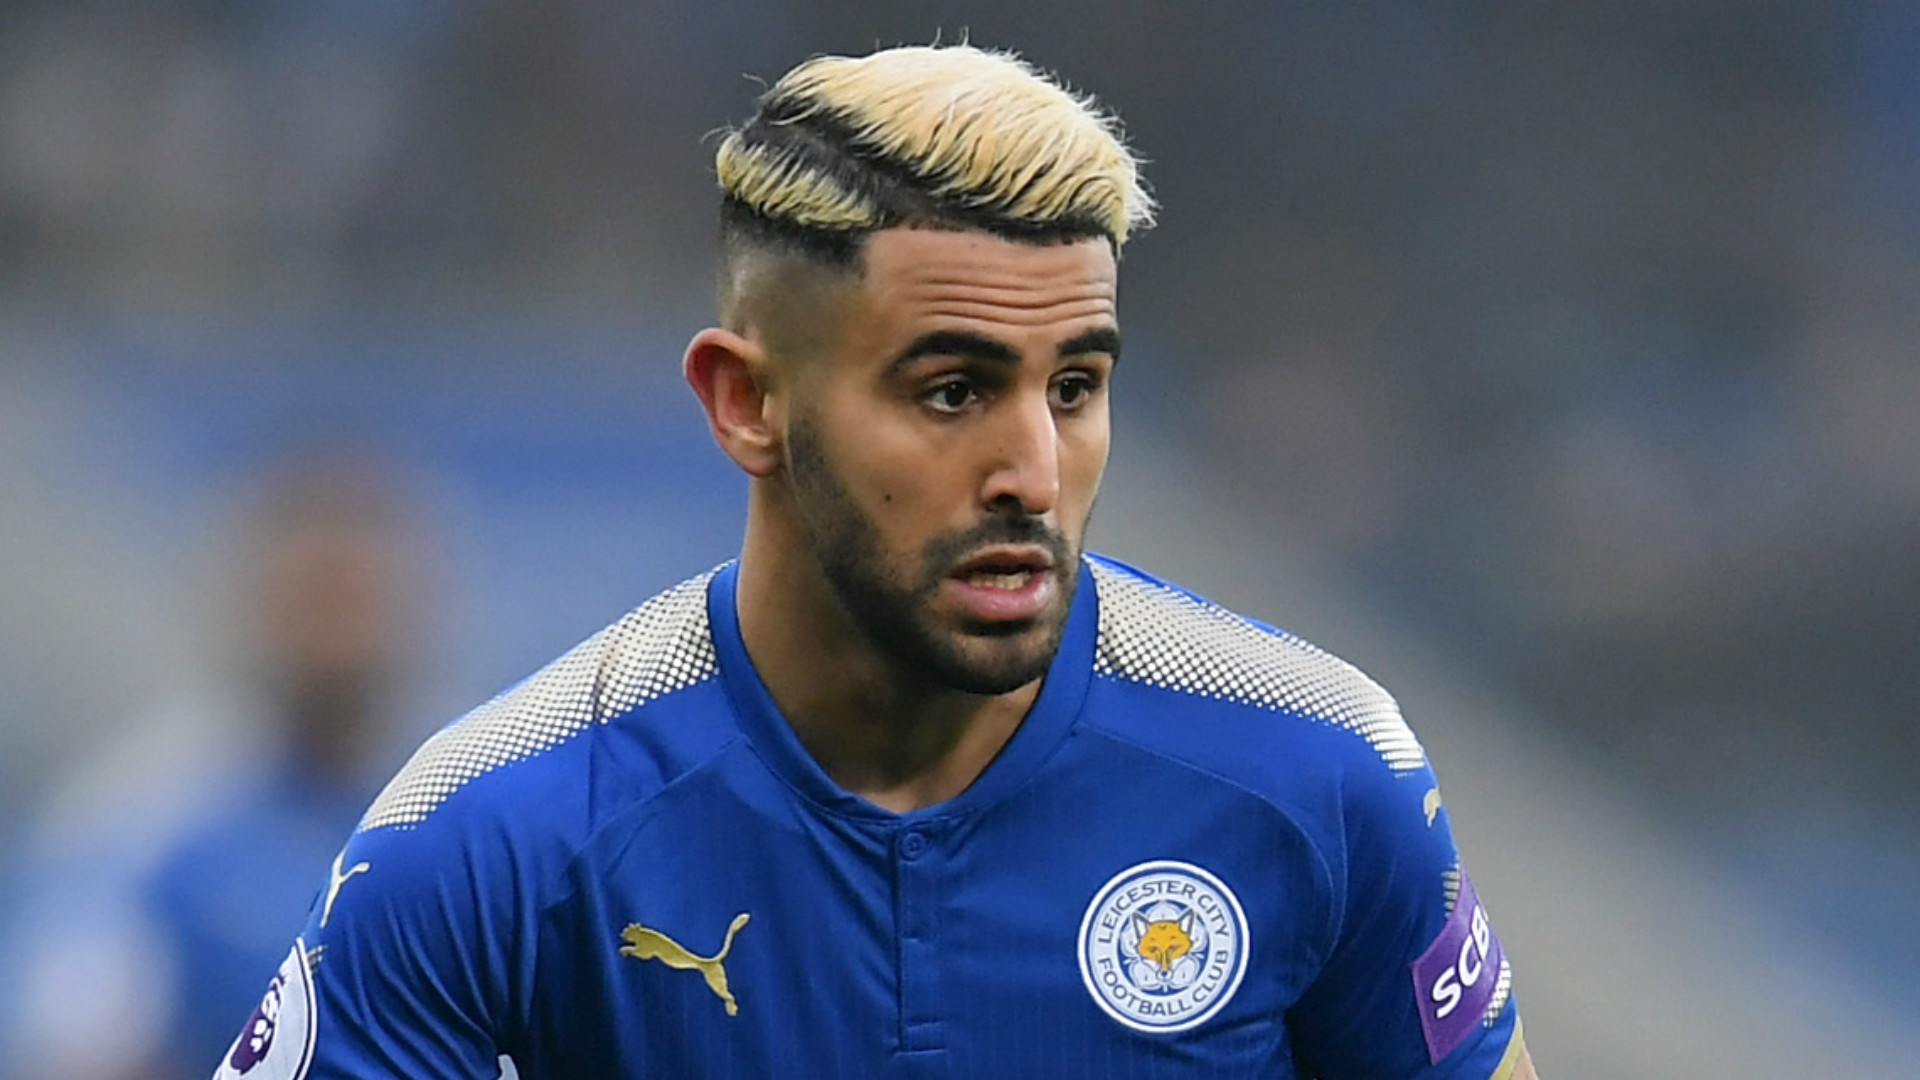 Riyad Mahrez 'retires' - or was his Facebook account hacked?